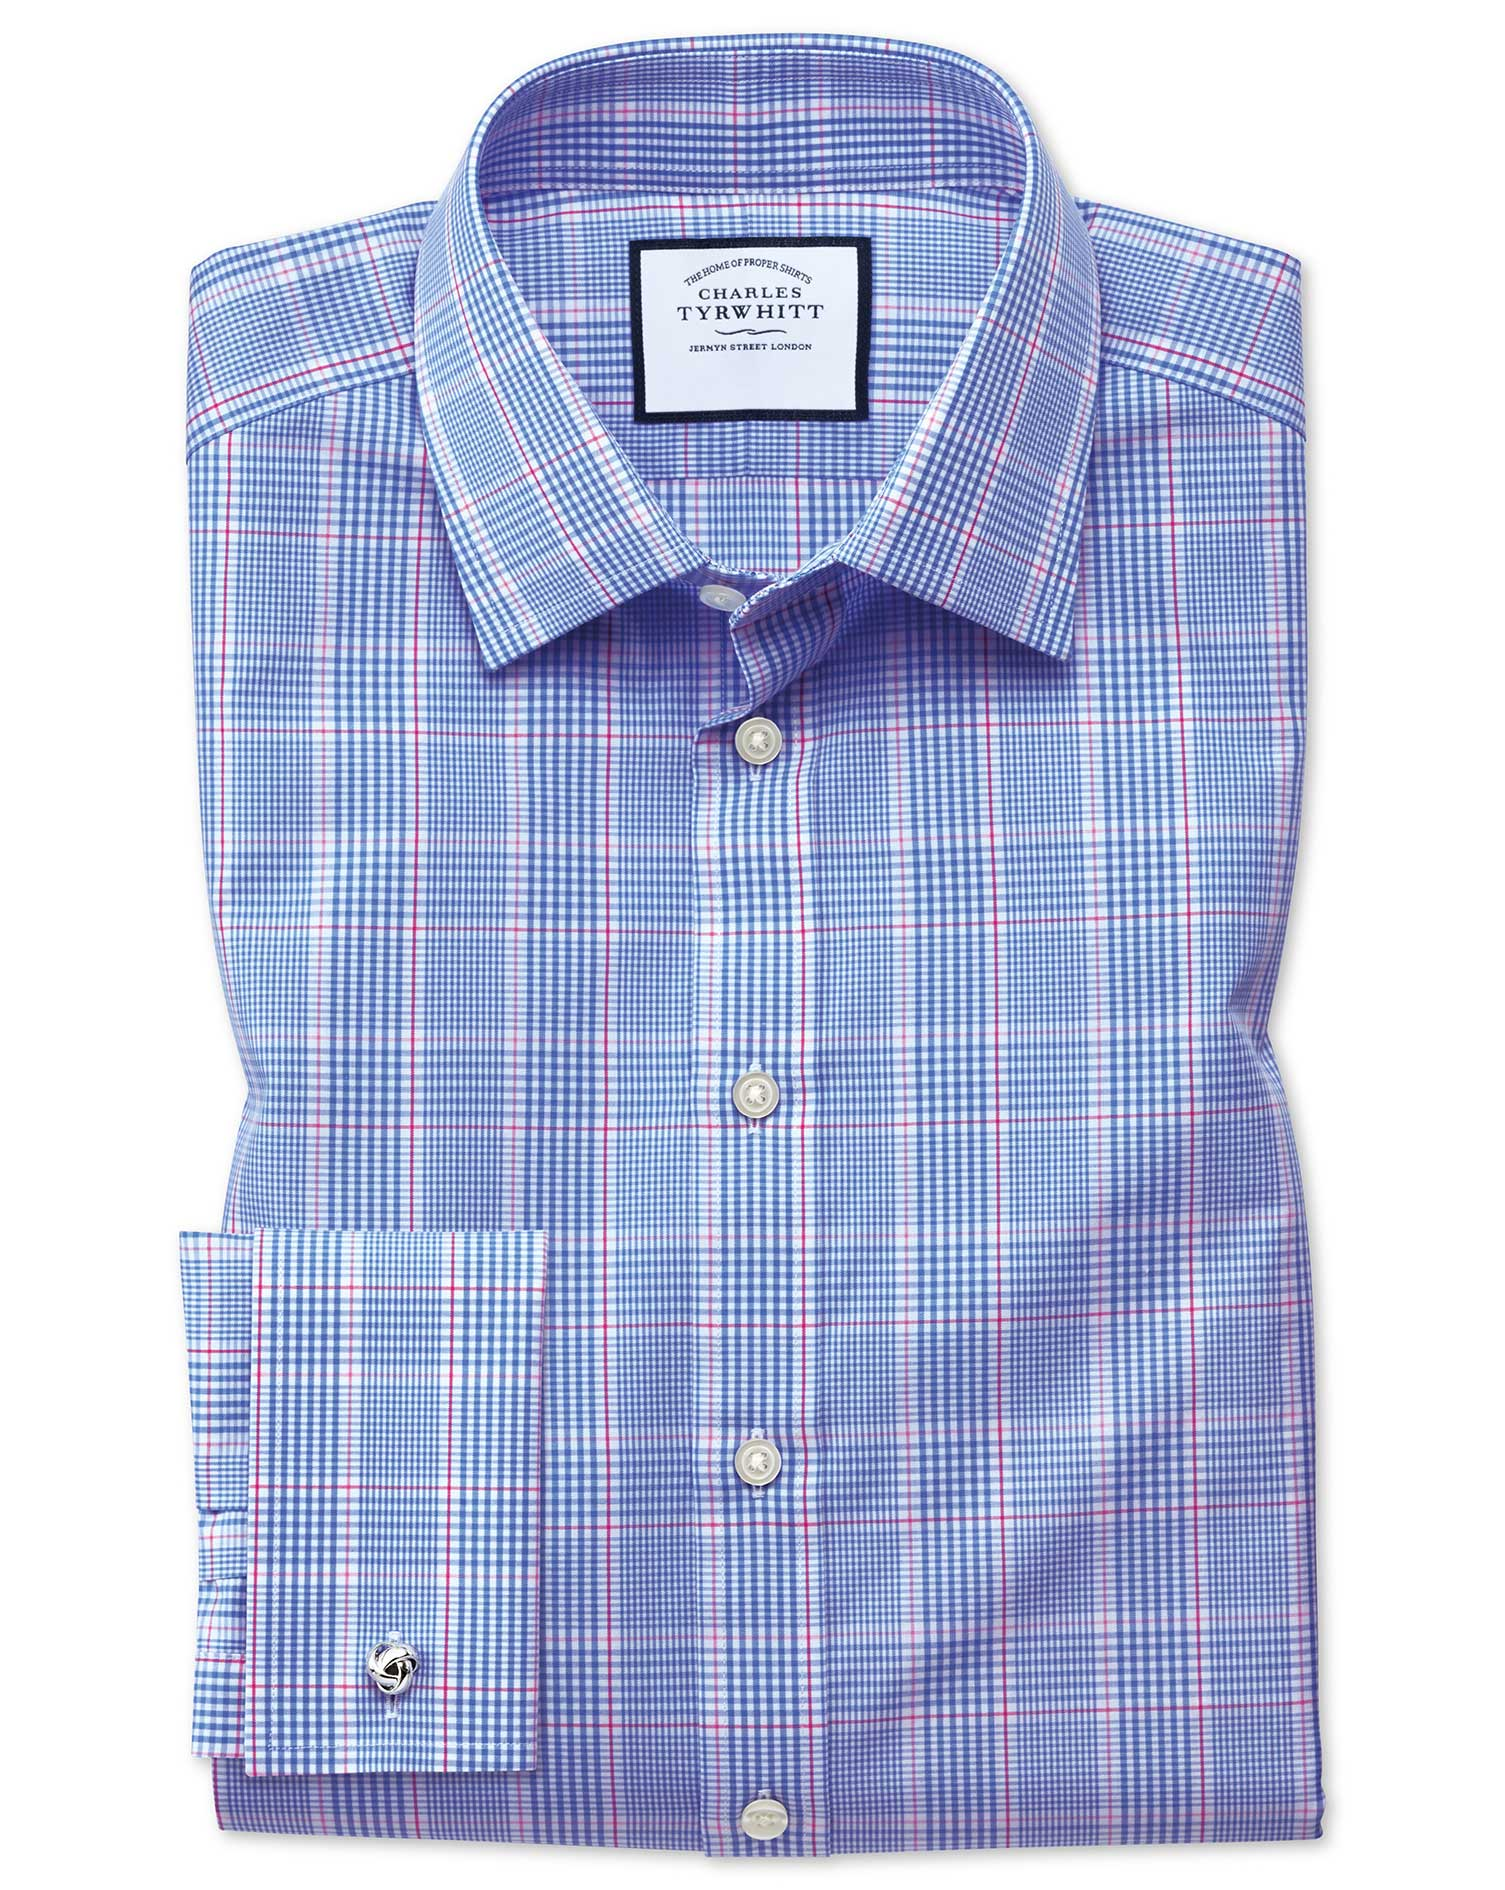 Slim Fit Prince Of Wales Blue Cotton Formal Shirt Double Cuff Size 17.5/35 by Charles Tyrwhitt